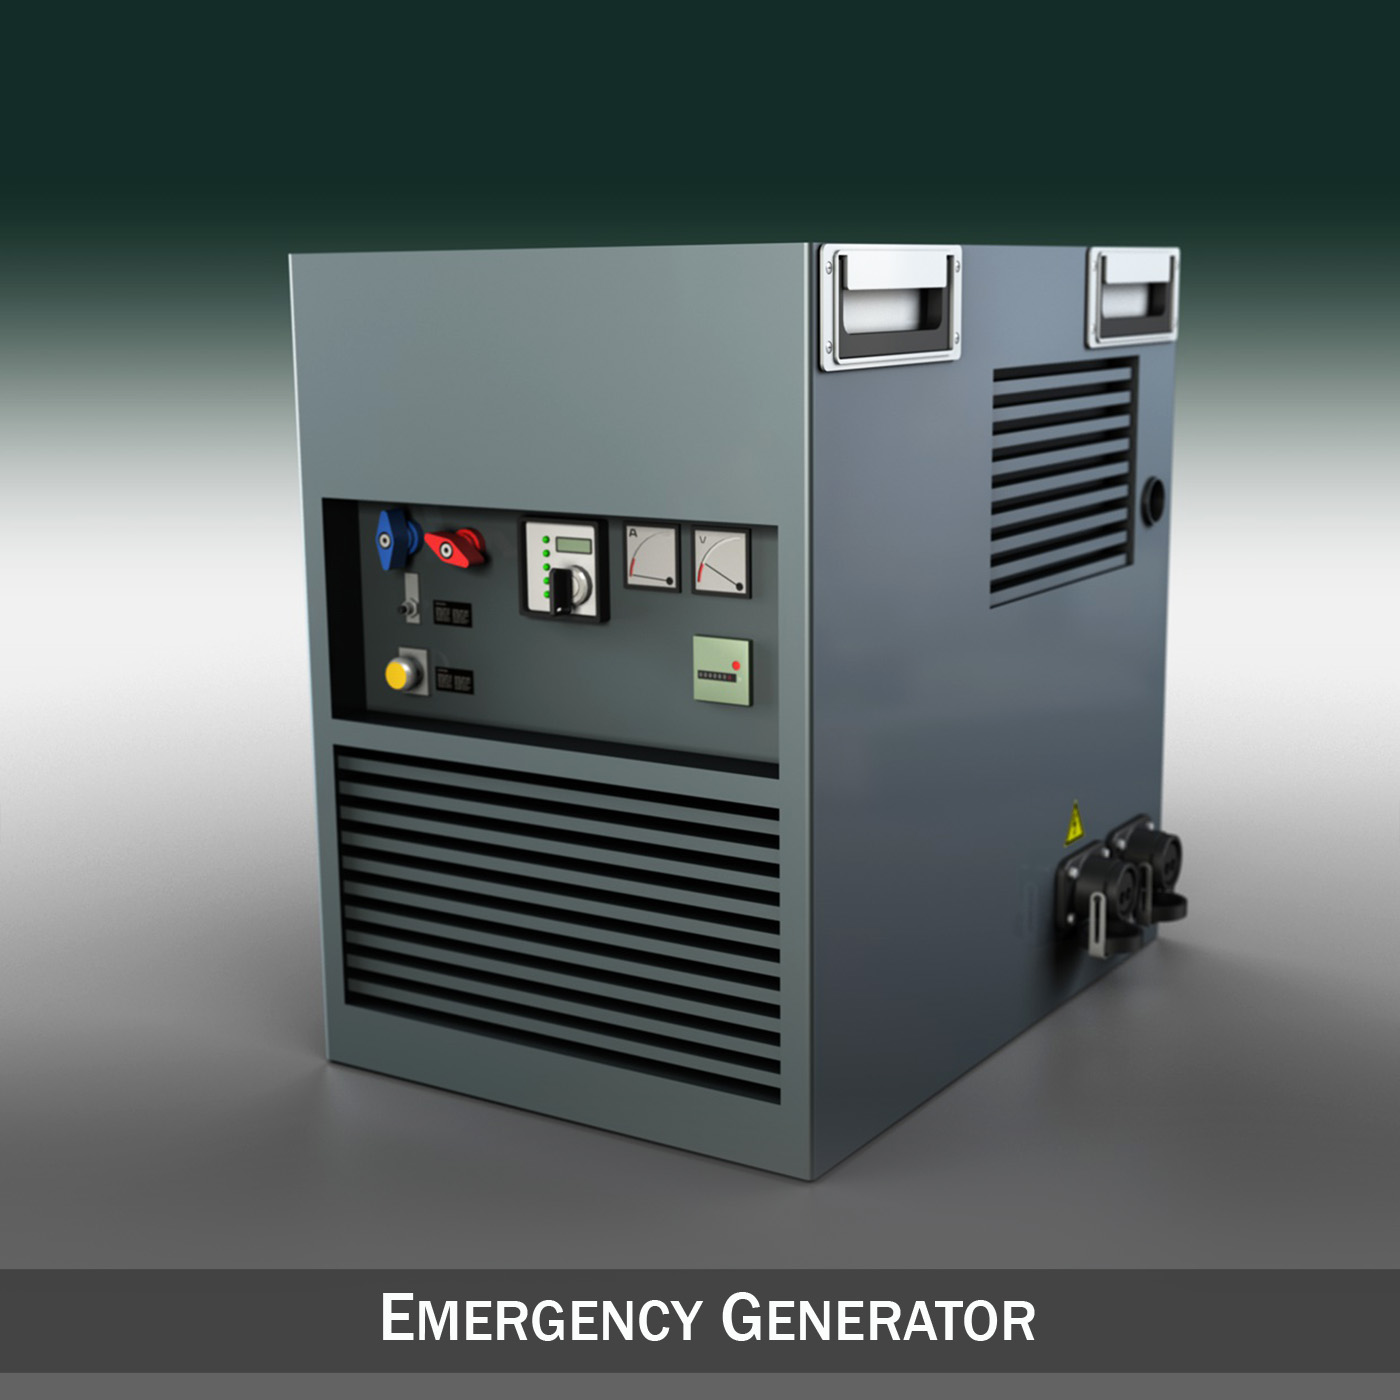 emergency generator 3d model 3ds fbx c4d lwo obj 188508